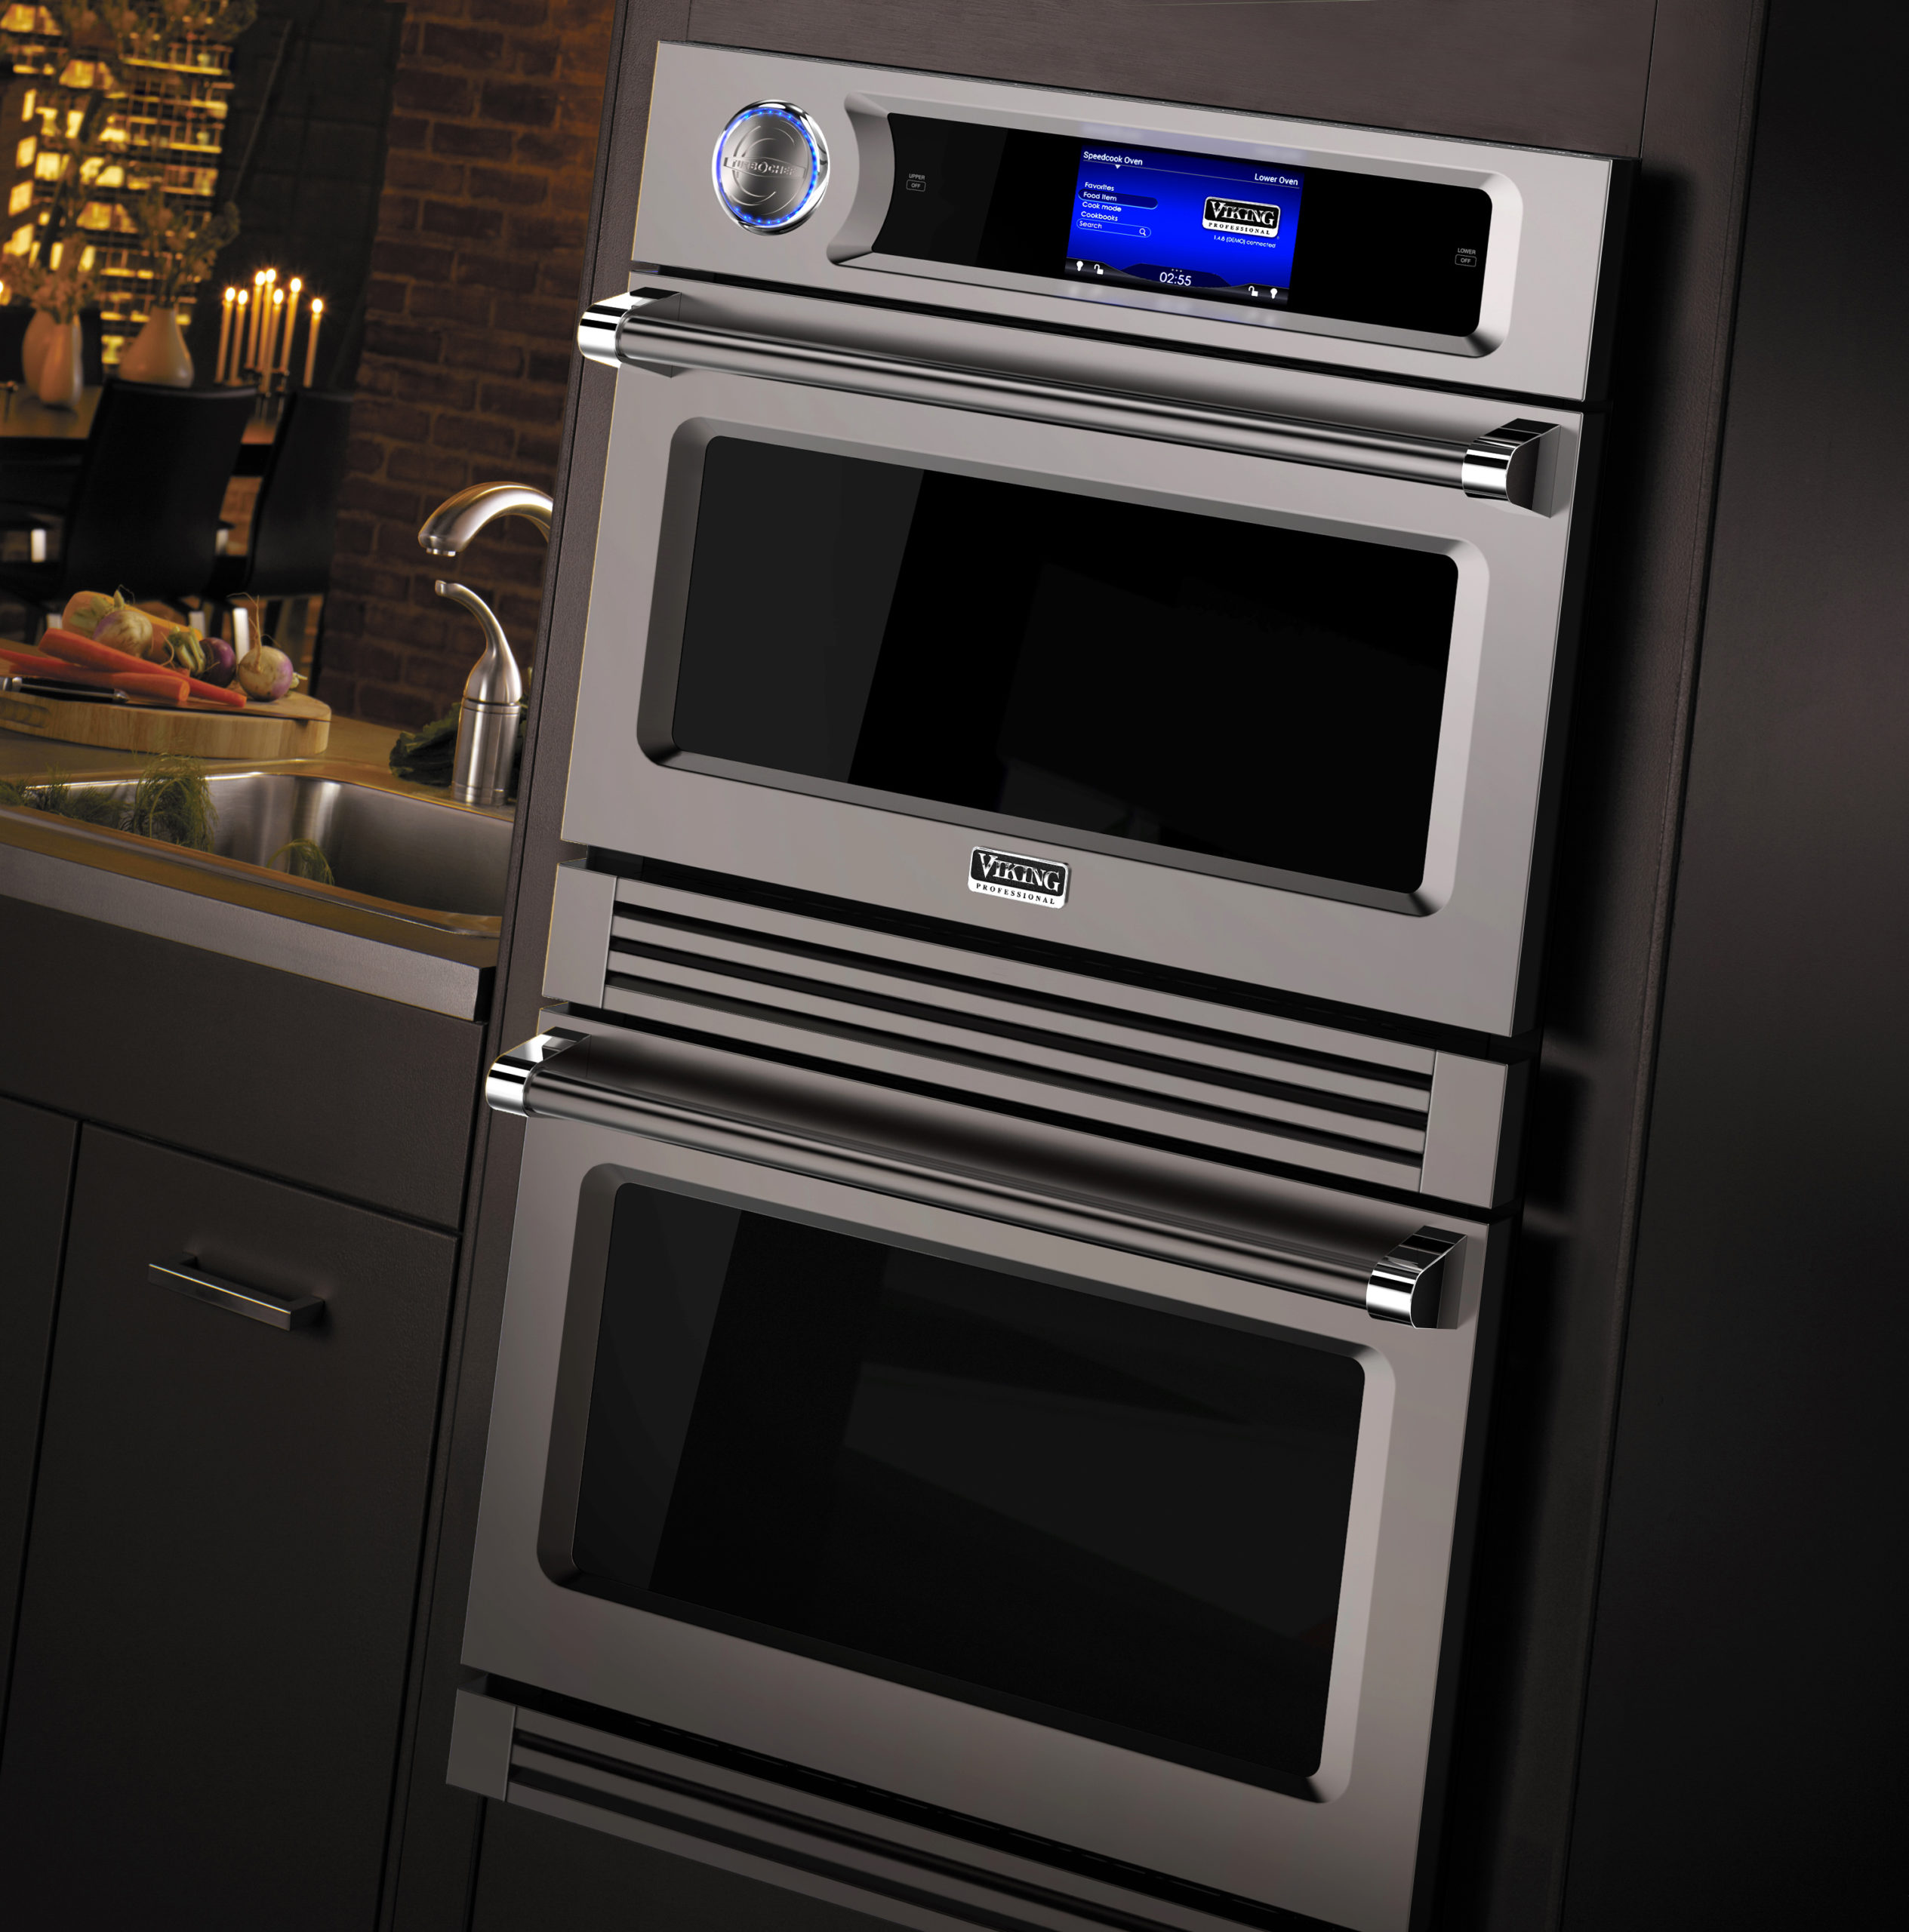 llc introduces the fastest oven